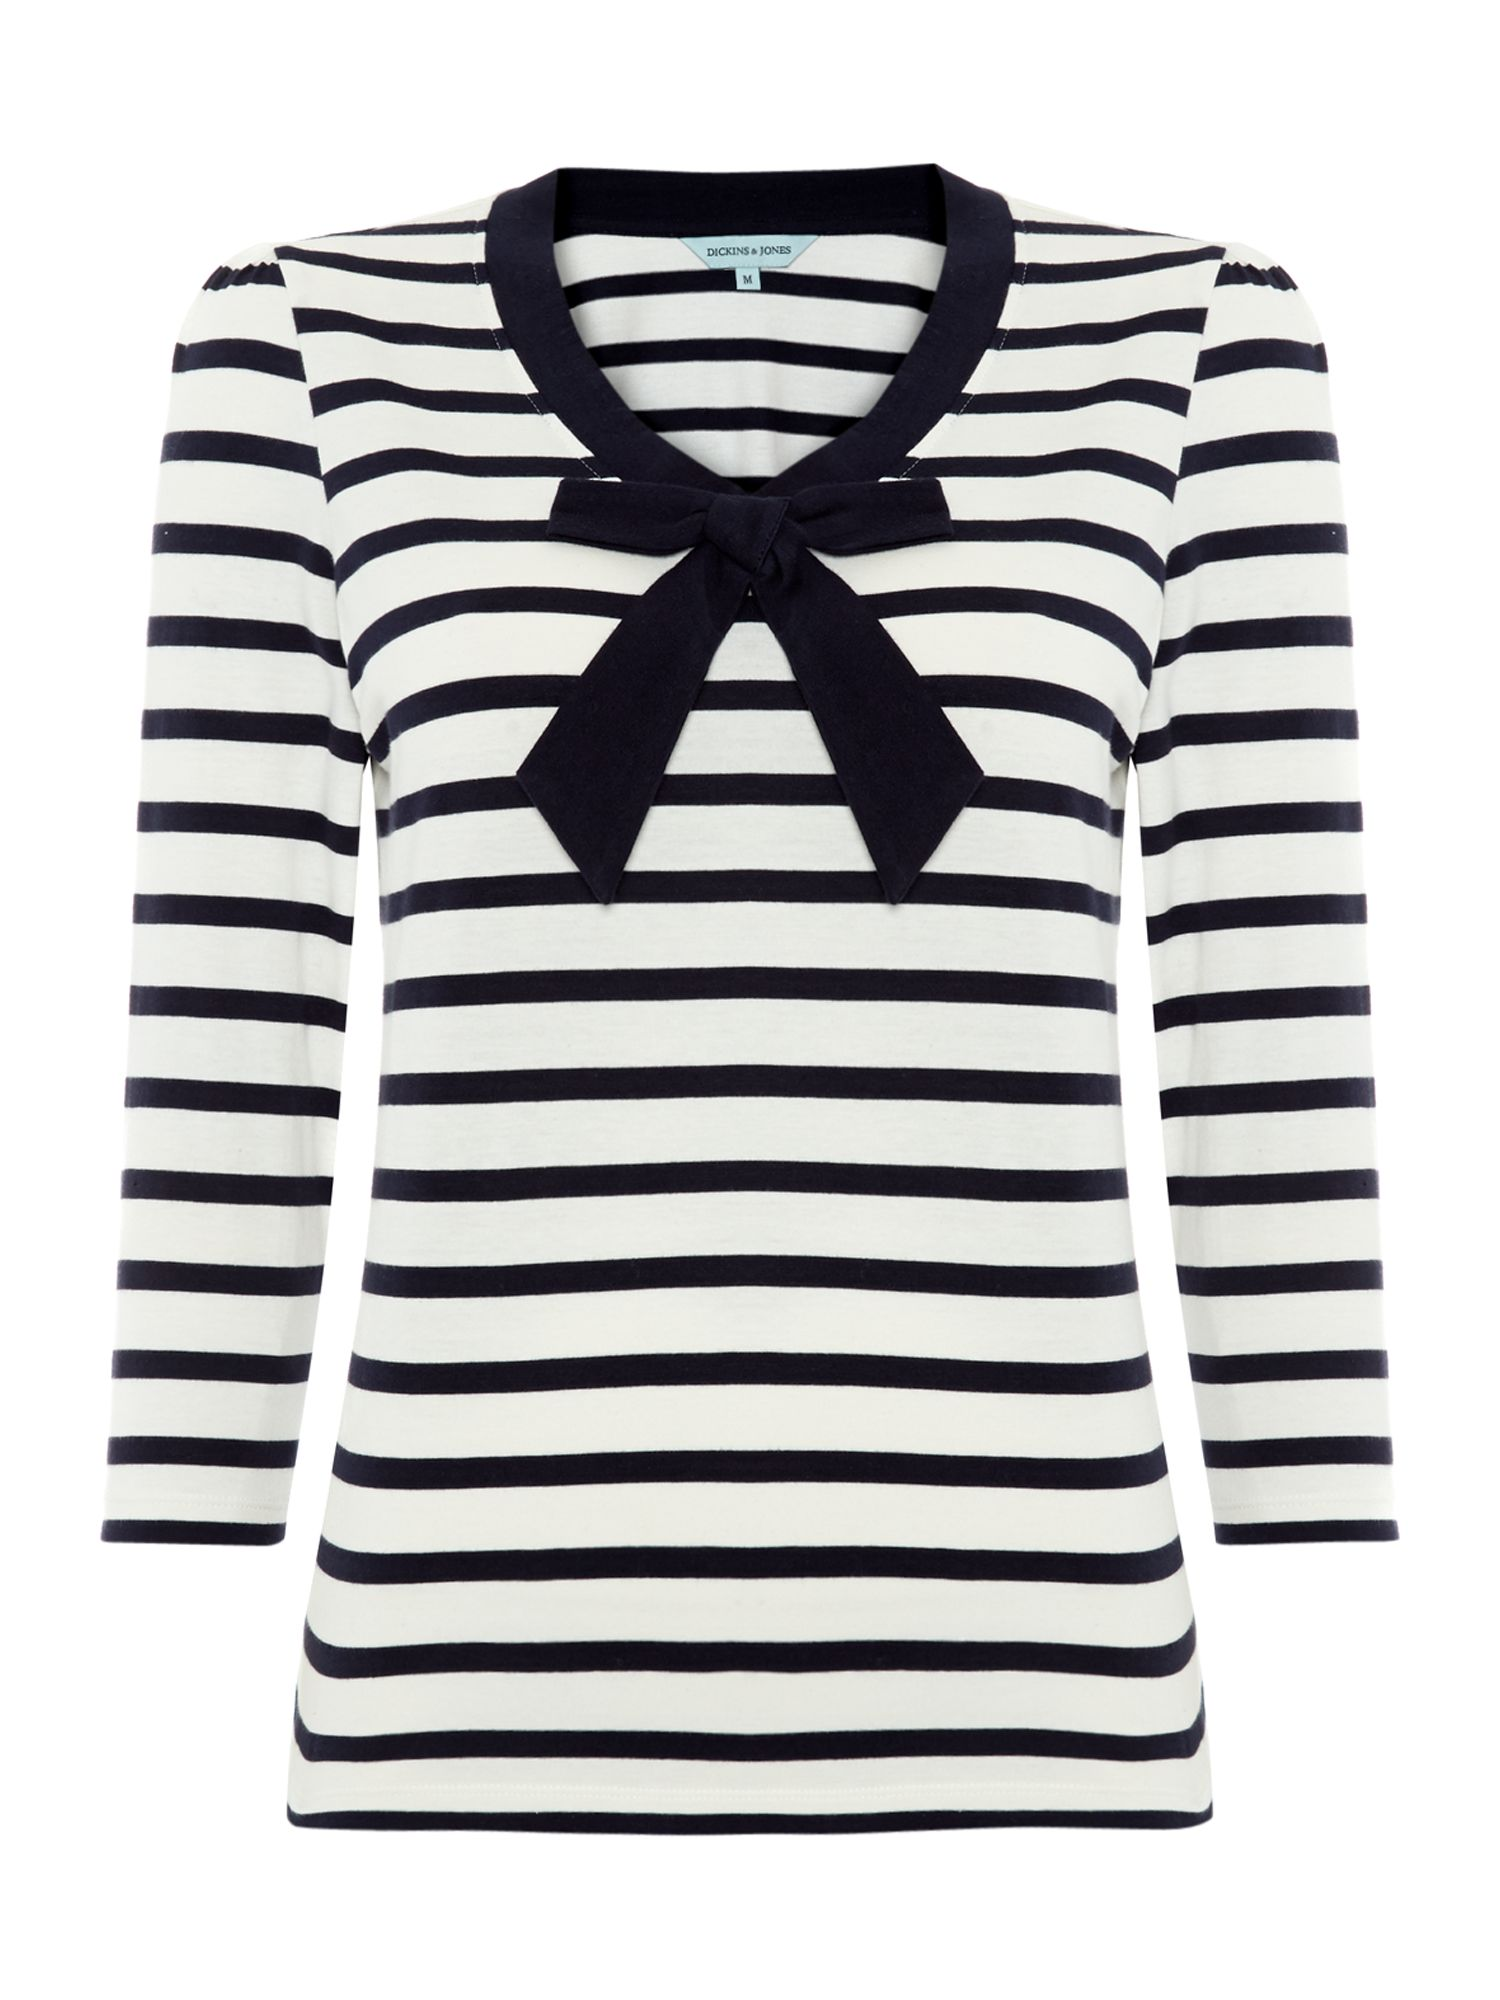 Stripe jersey top with bow